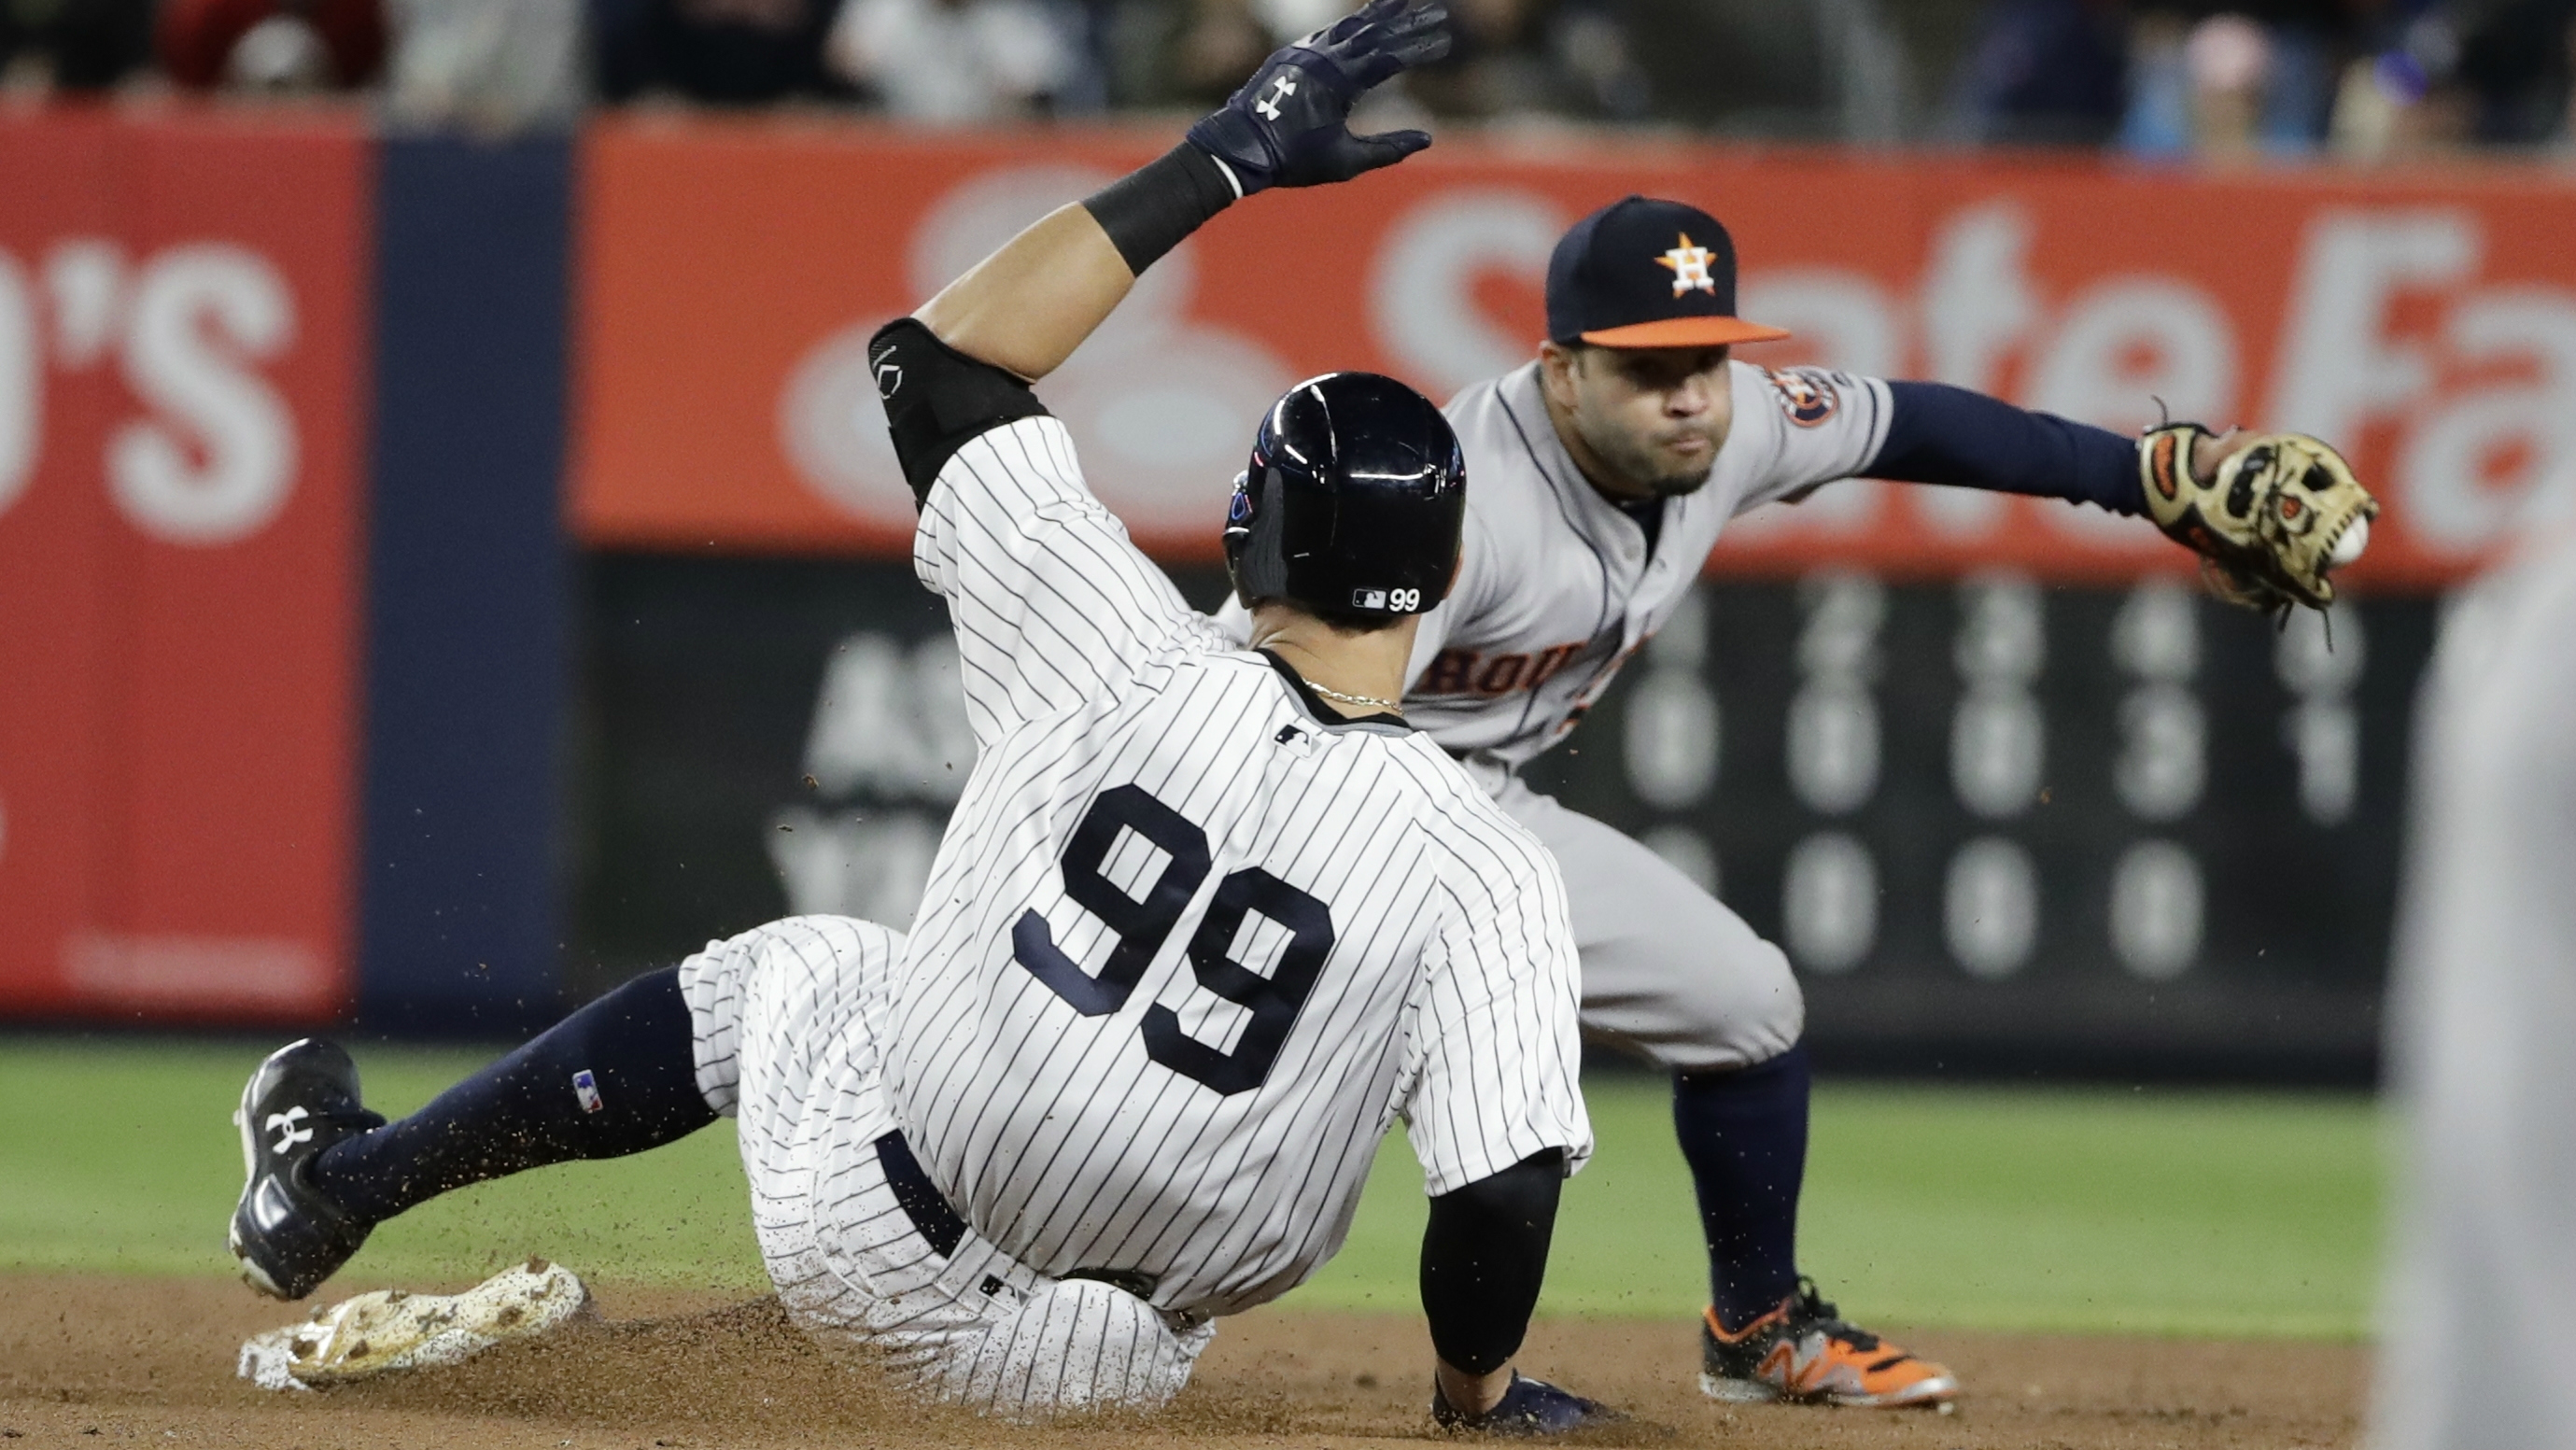 New York Yankees' Aaron Judge (99) slides into second base with a double during the fifth inning as Houston Astros second baseman Jose Altuve waits for the throw in a baseball game.